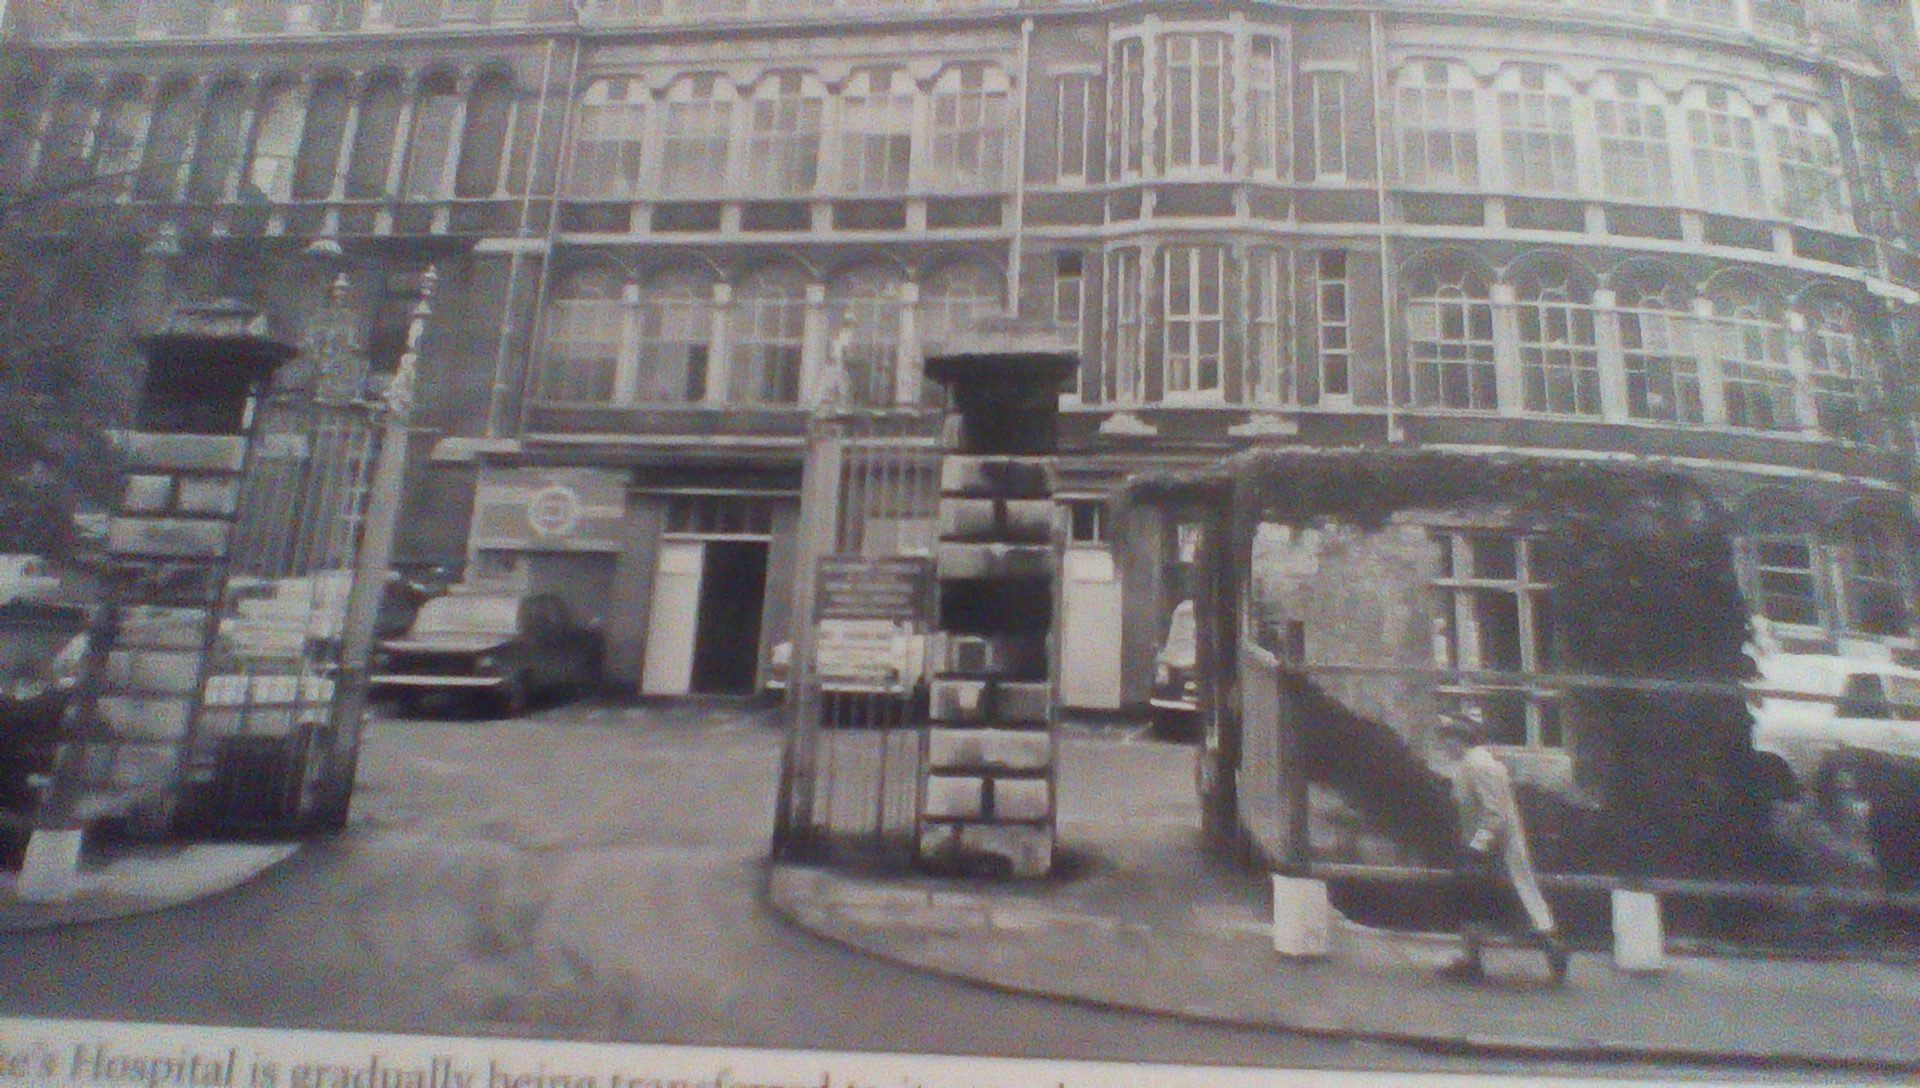 Old Addenbrookes, Trumpington St Home and surrounding